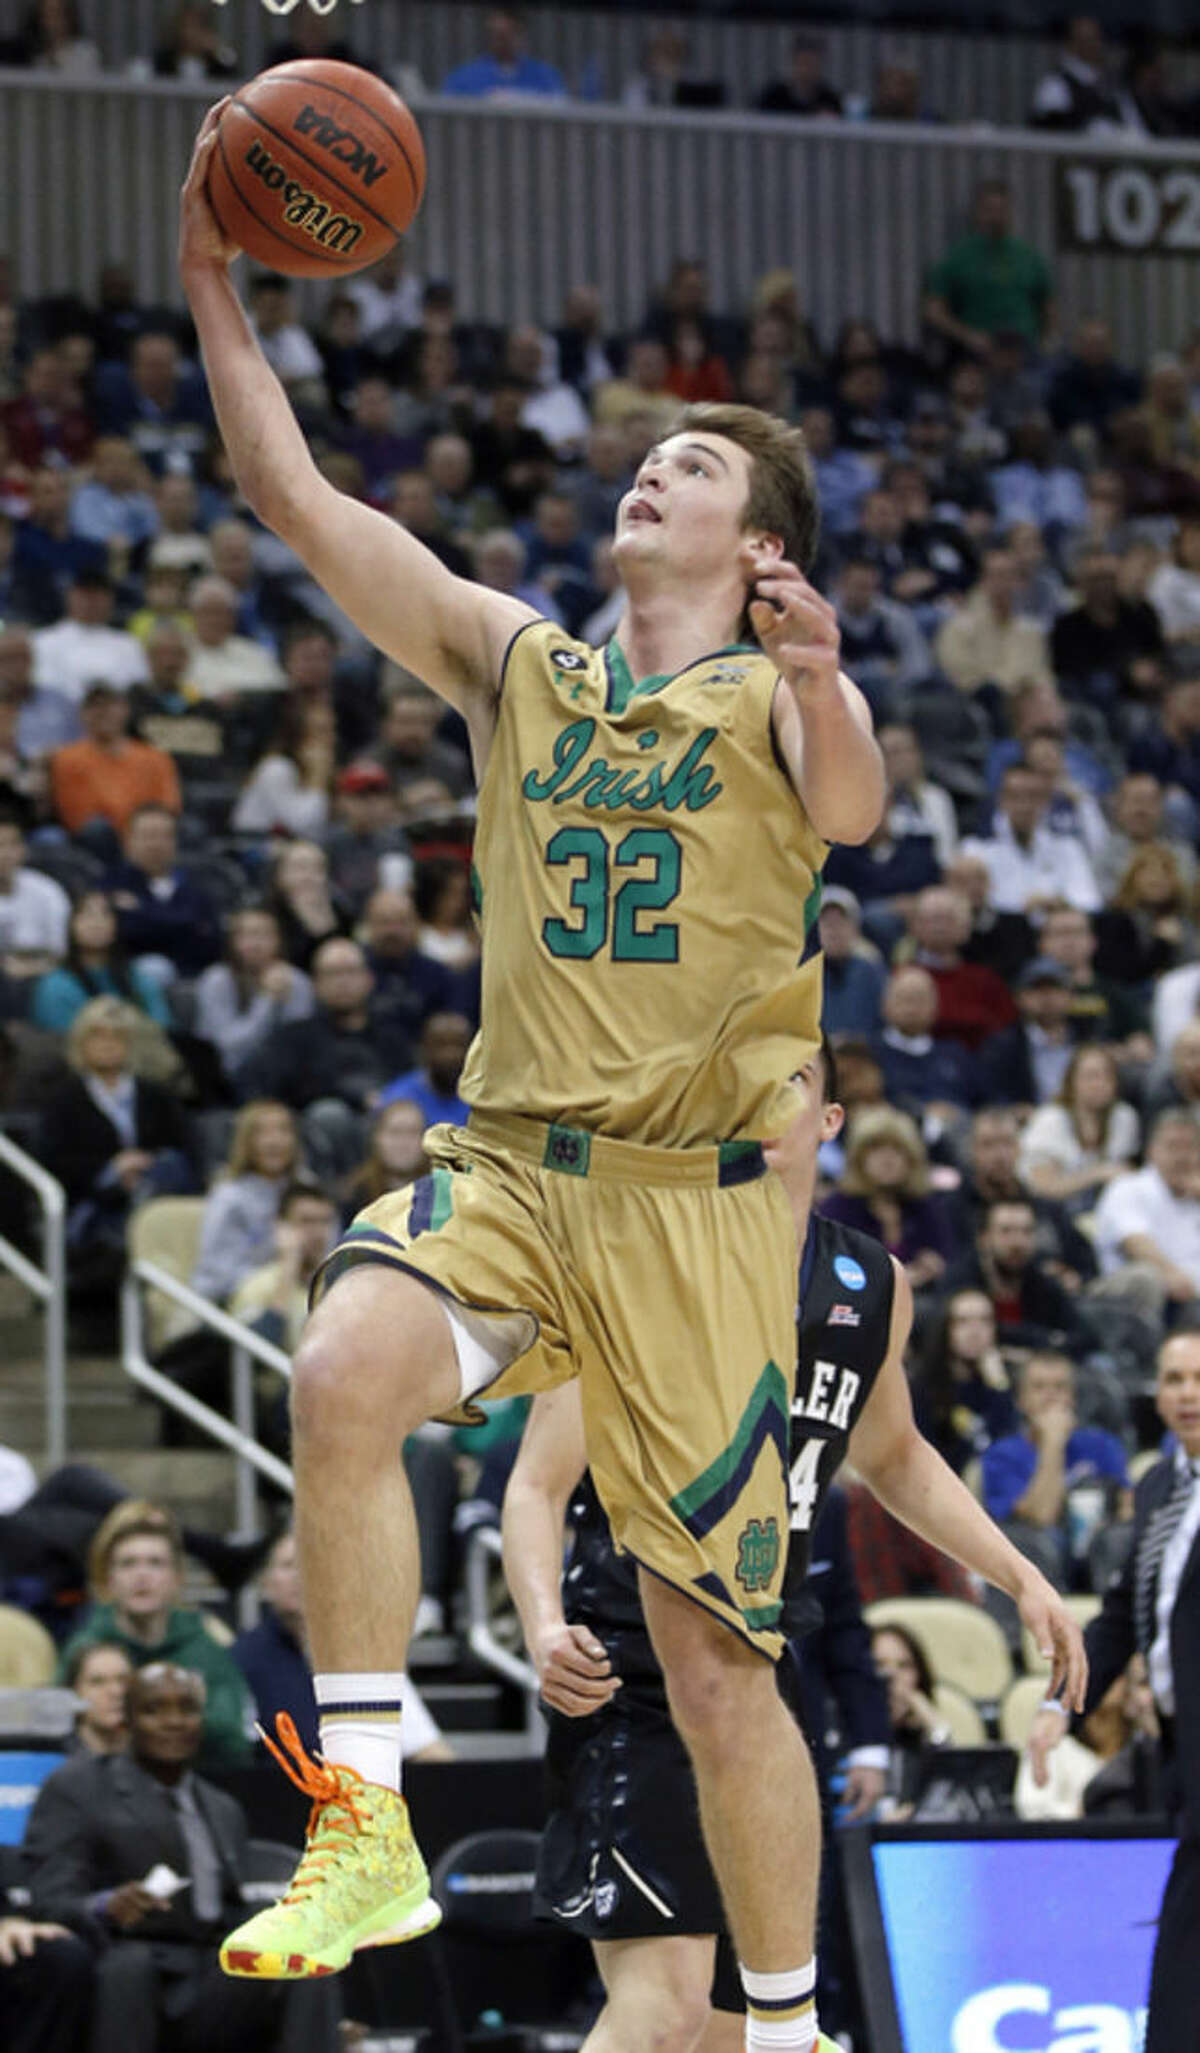 Notre Dame's Steve Vasturia (32) shoots in front of Butler's Kellen Dunham during the first half of an NCAA college basketball tournament Round of 32 game Saturday, March 21, 2015, in Pittsburgh. (AP Photo/Gene J. Puskar)